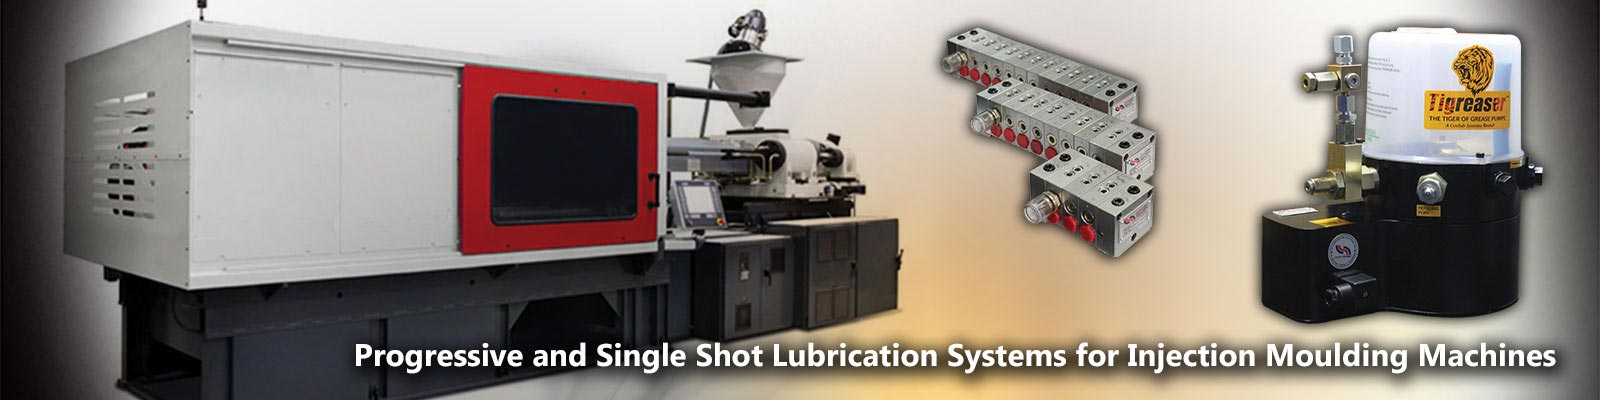 Progressive and Single Shot Oil Lubrication System